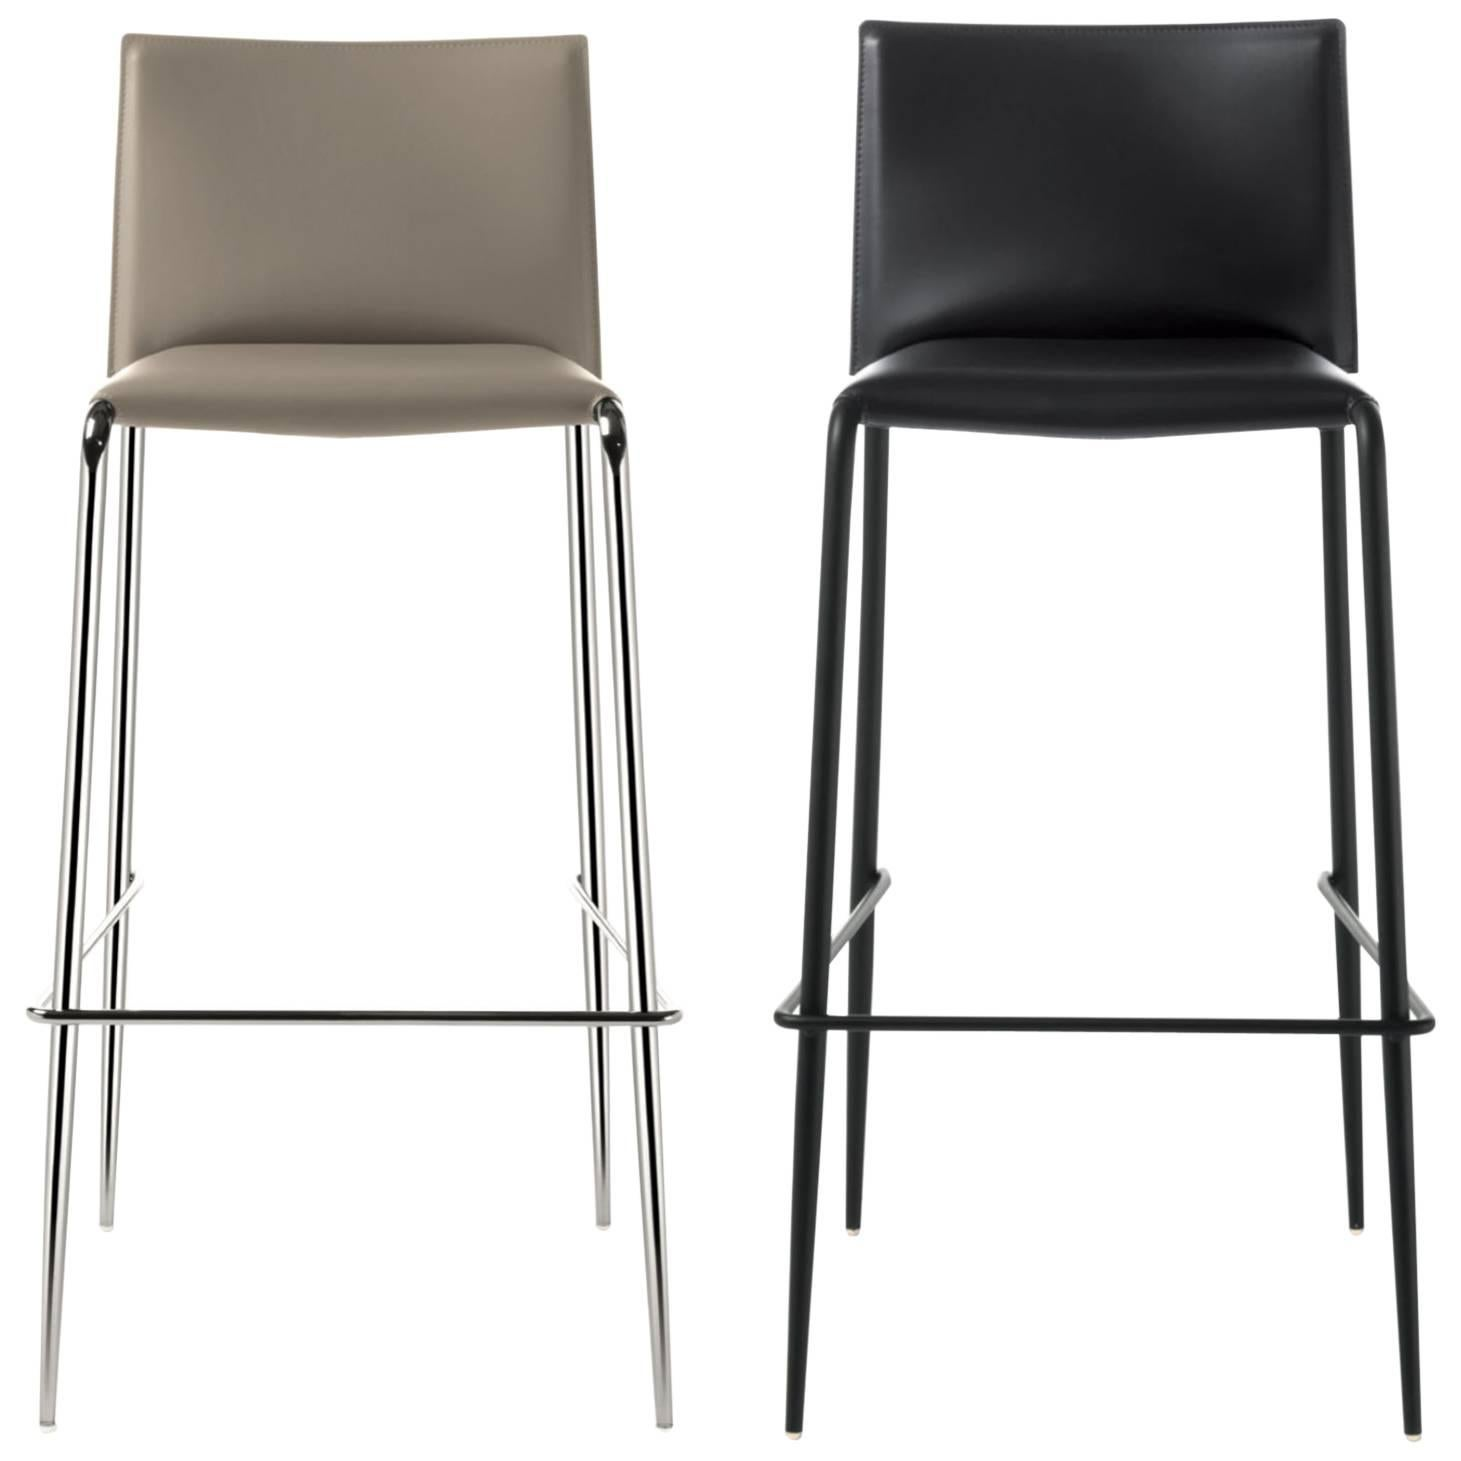 Merveilleux Italian Modern Bar Stool Made Of Leather, Made In Italy, New 30 Colors  Available